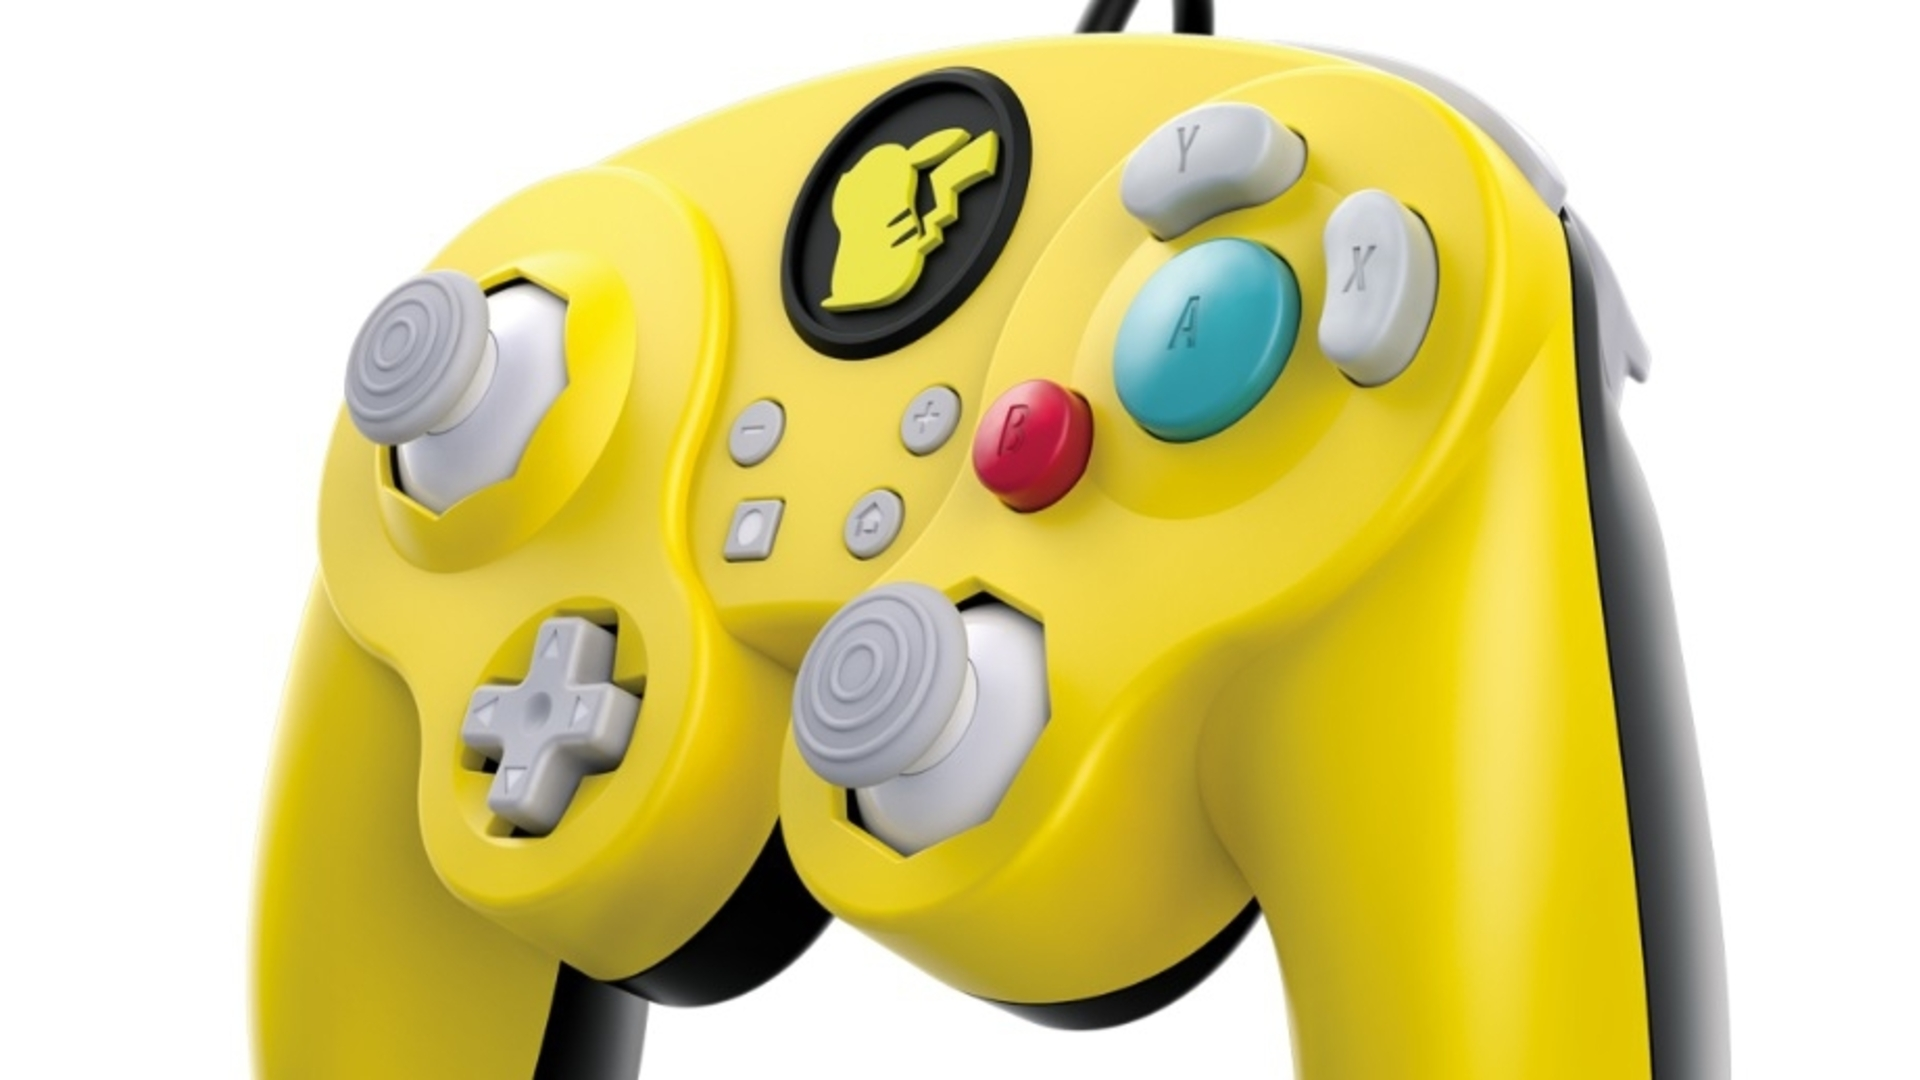 These Gamecube Inspired Nintendo Switch Controllers Come Out Just In 5 Way Joystick Time For Super Smash Bros Ultimate